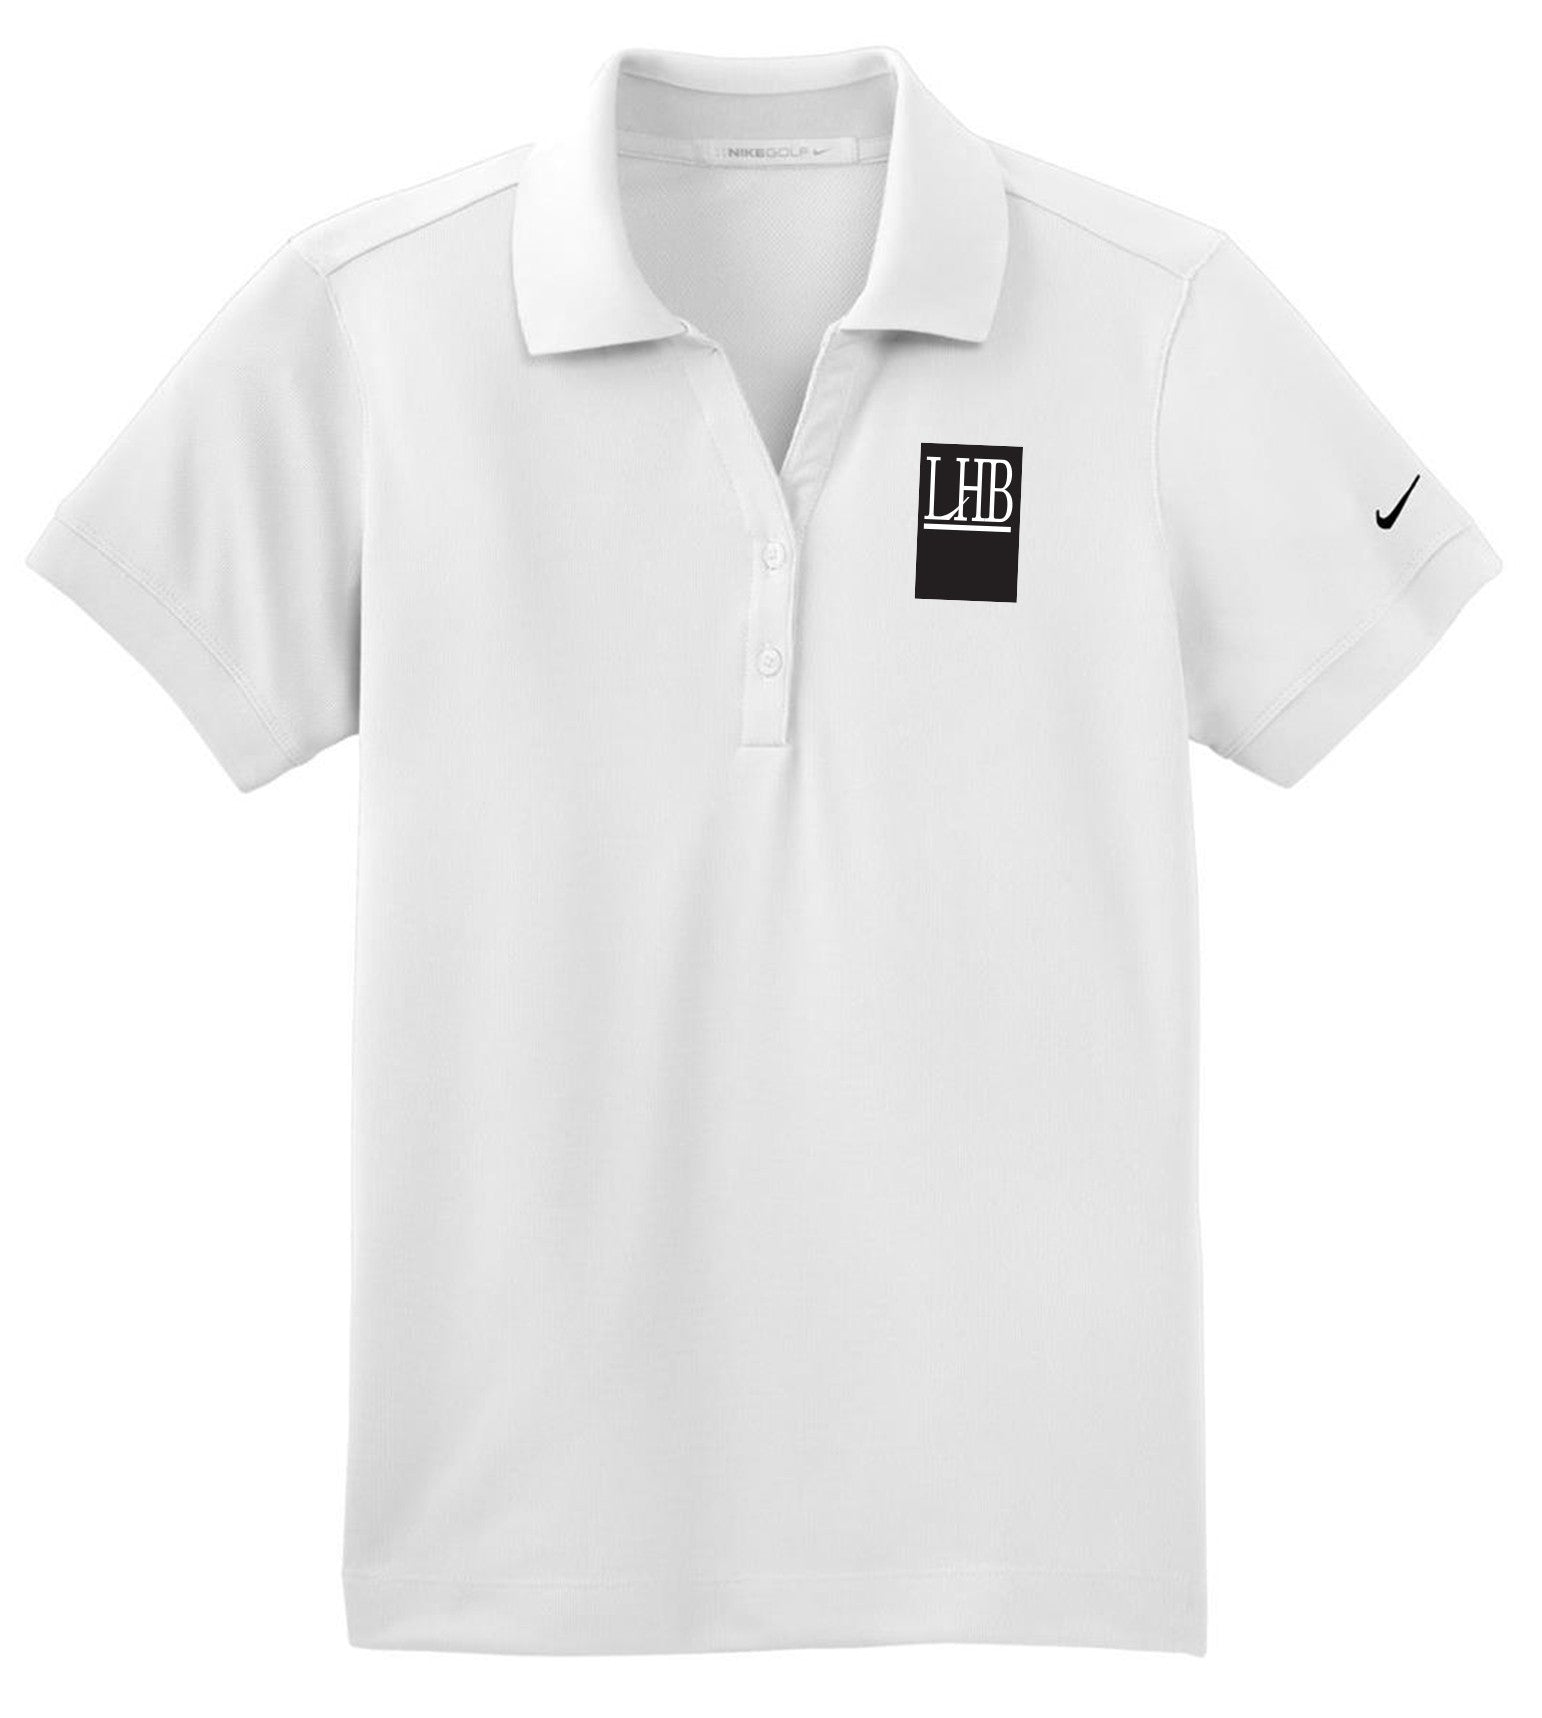 Nike Golf - Dri-FIT Polo - Women's - #286772